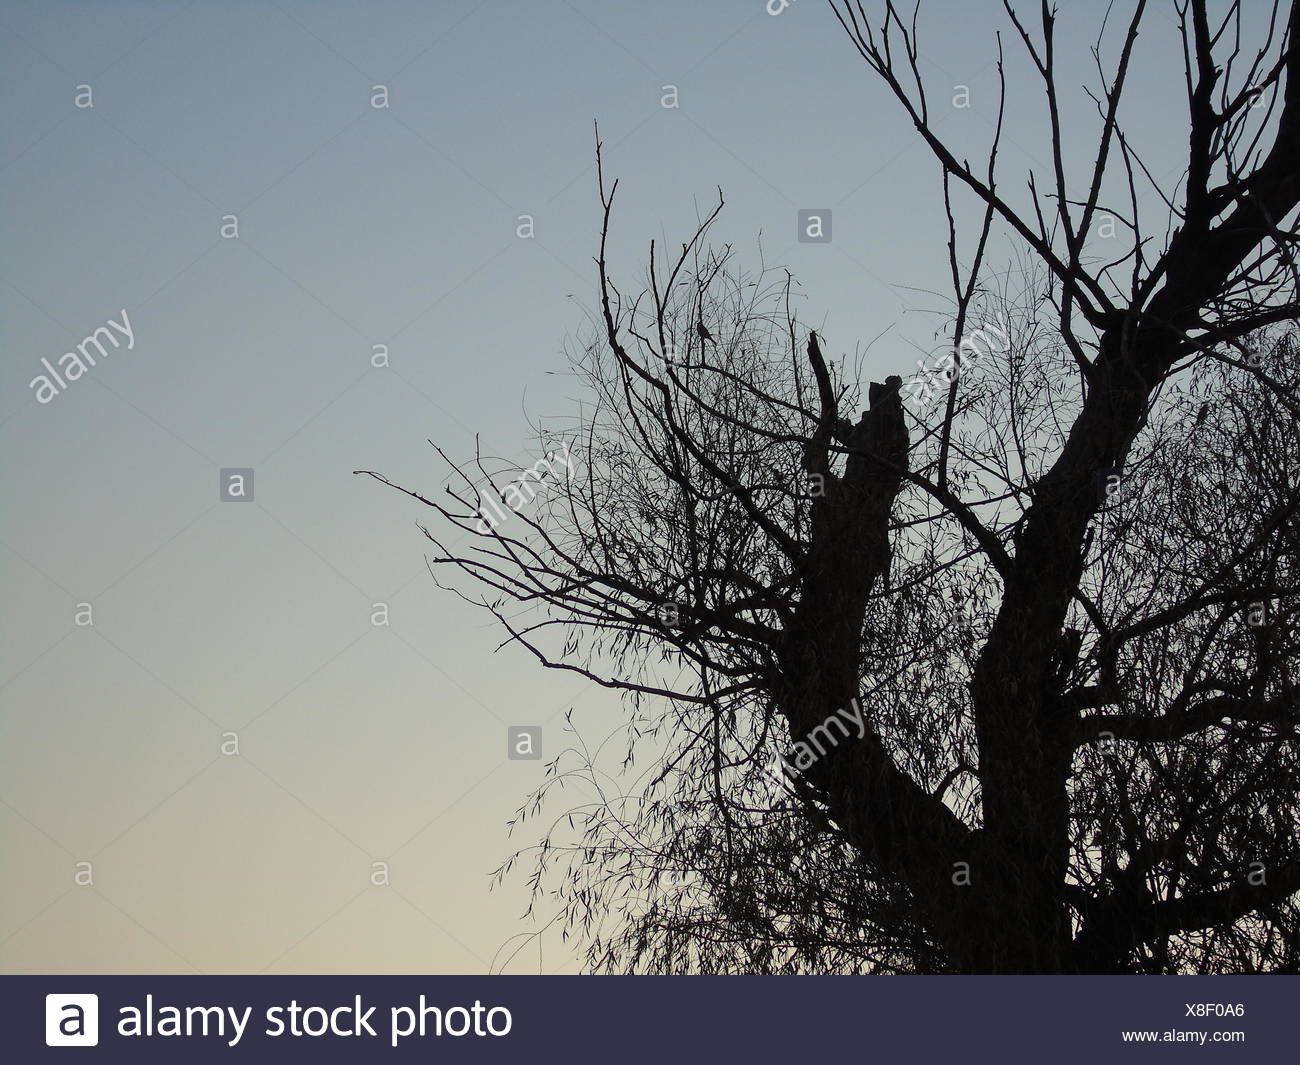 A poetic winter - Stock Image